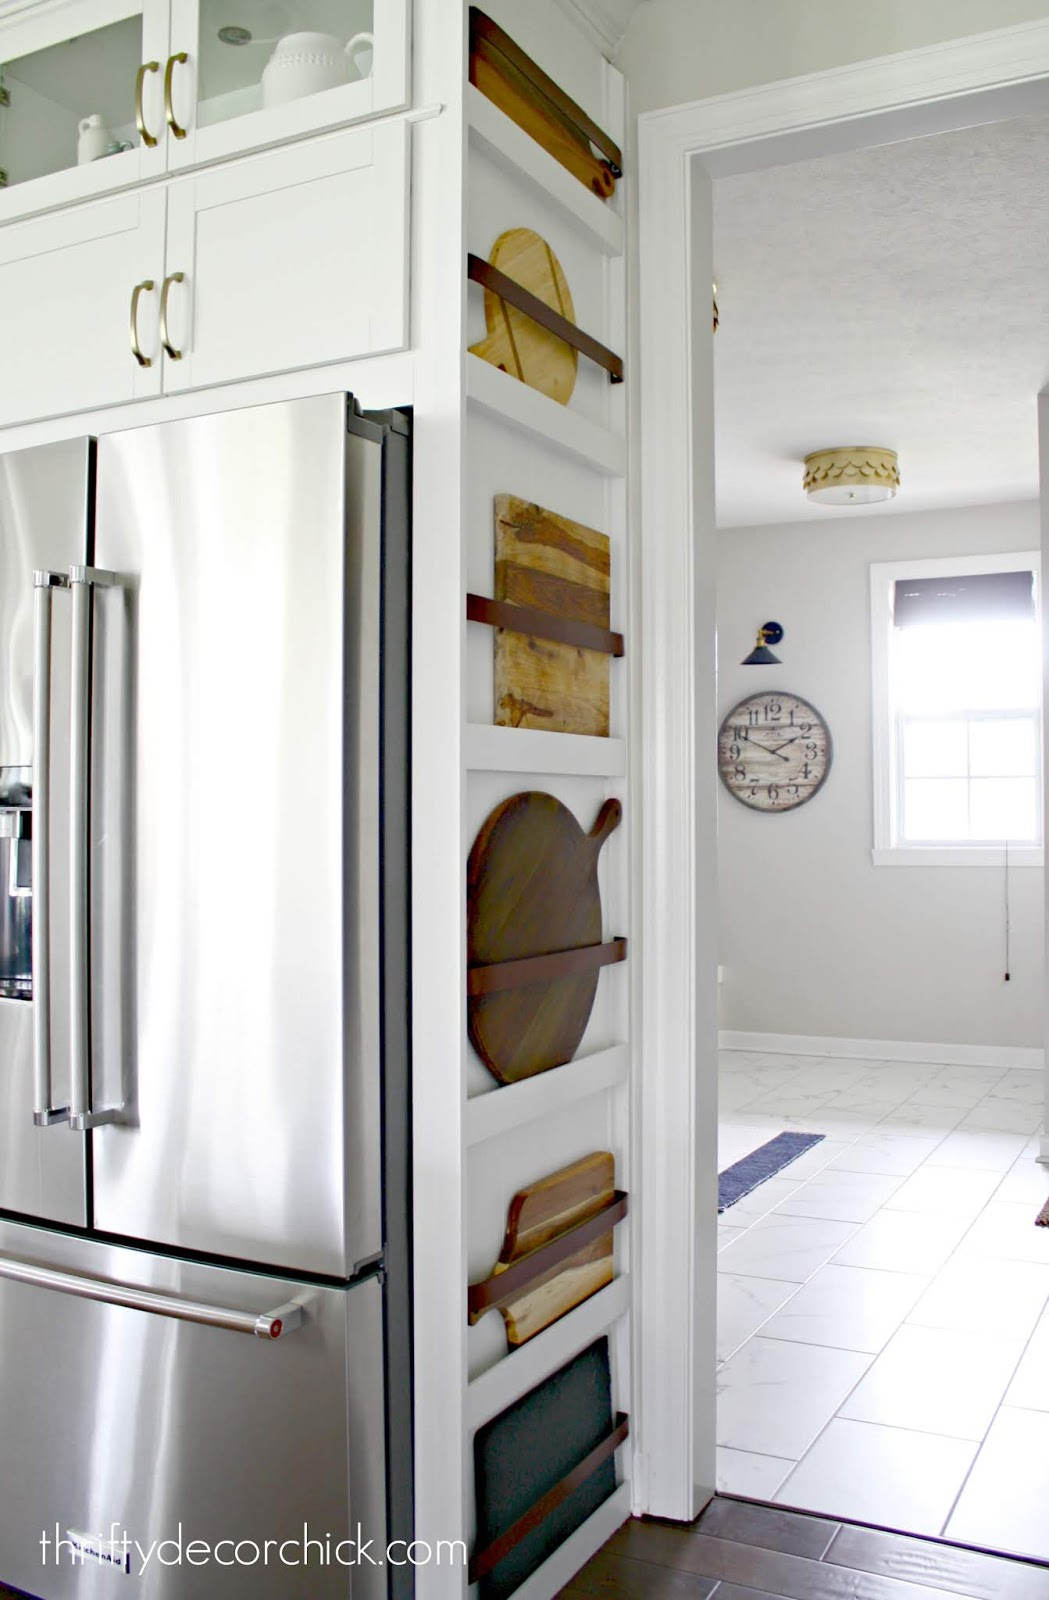 Use side of fridge for plate rack